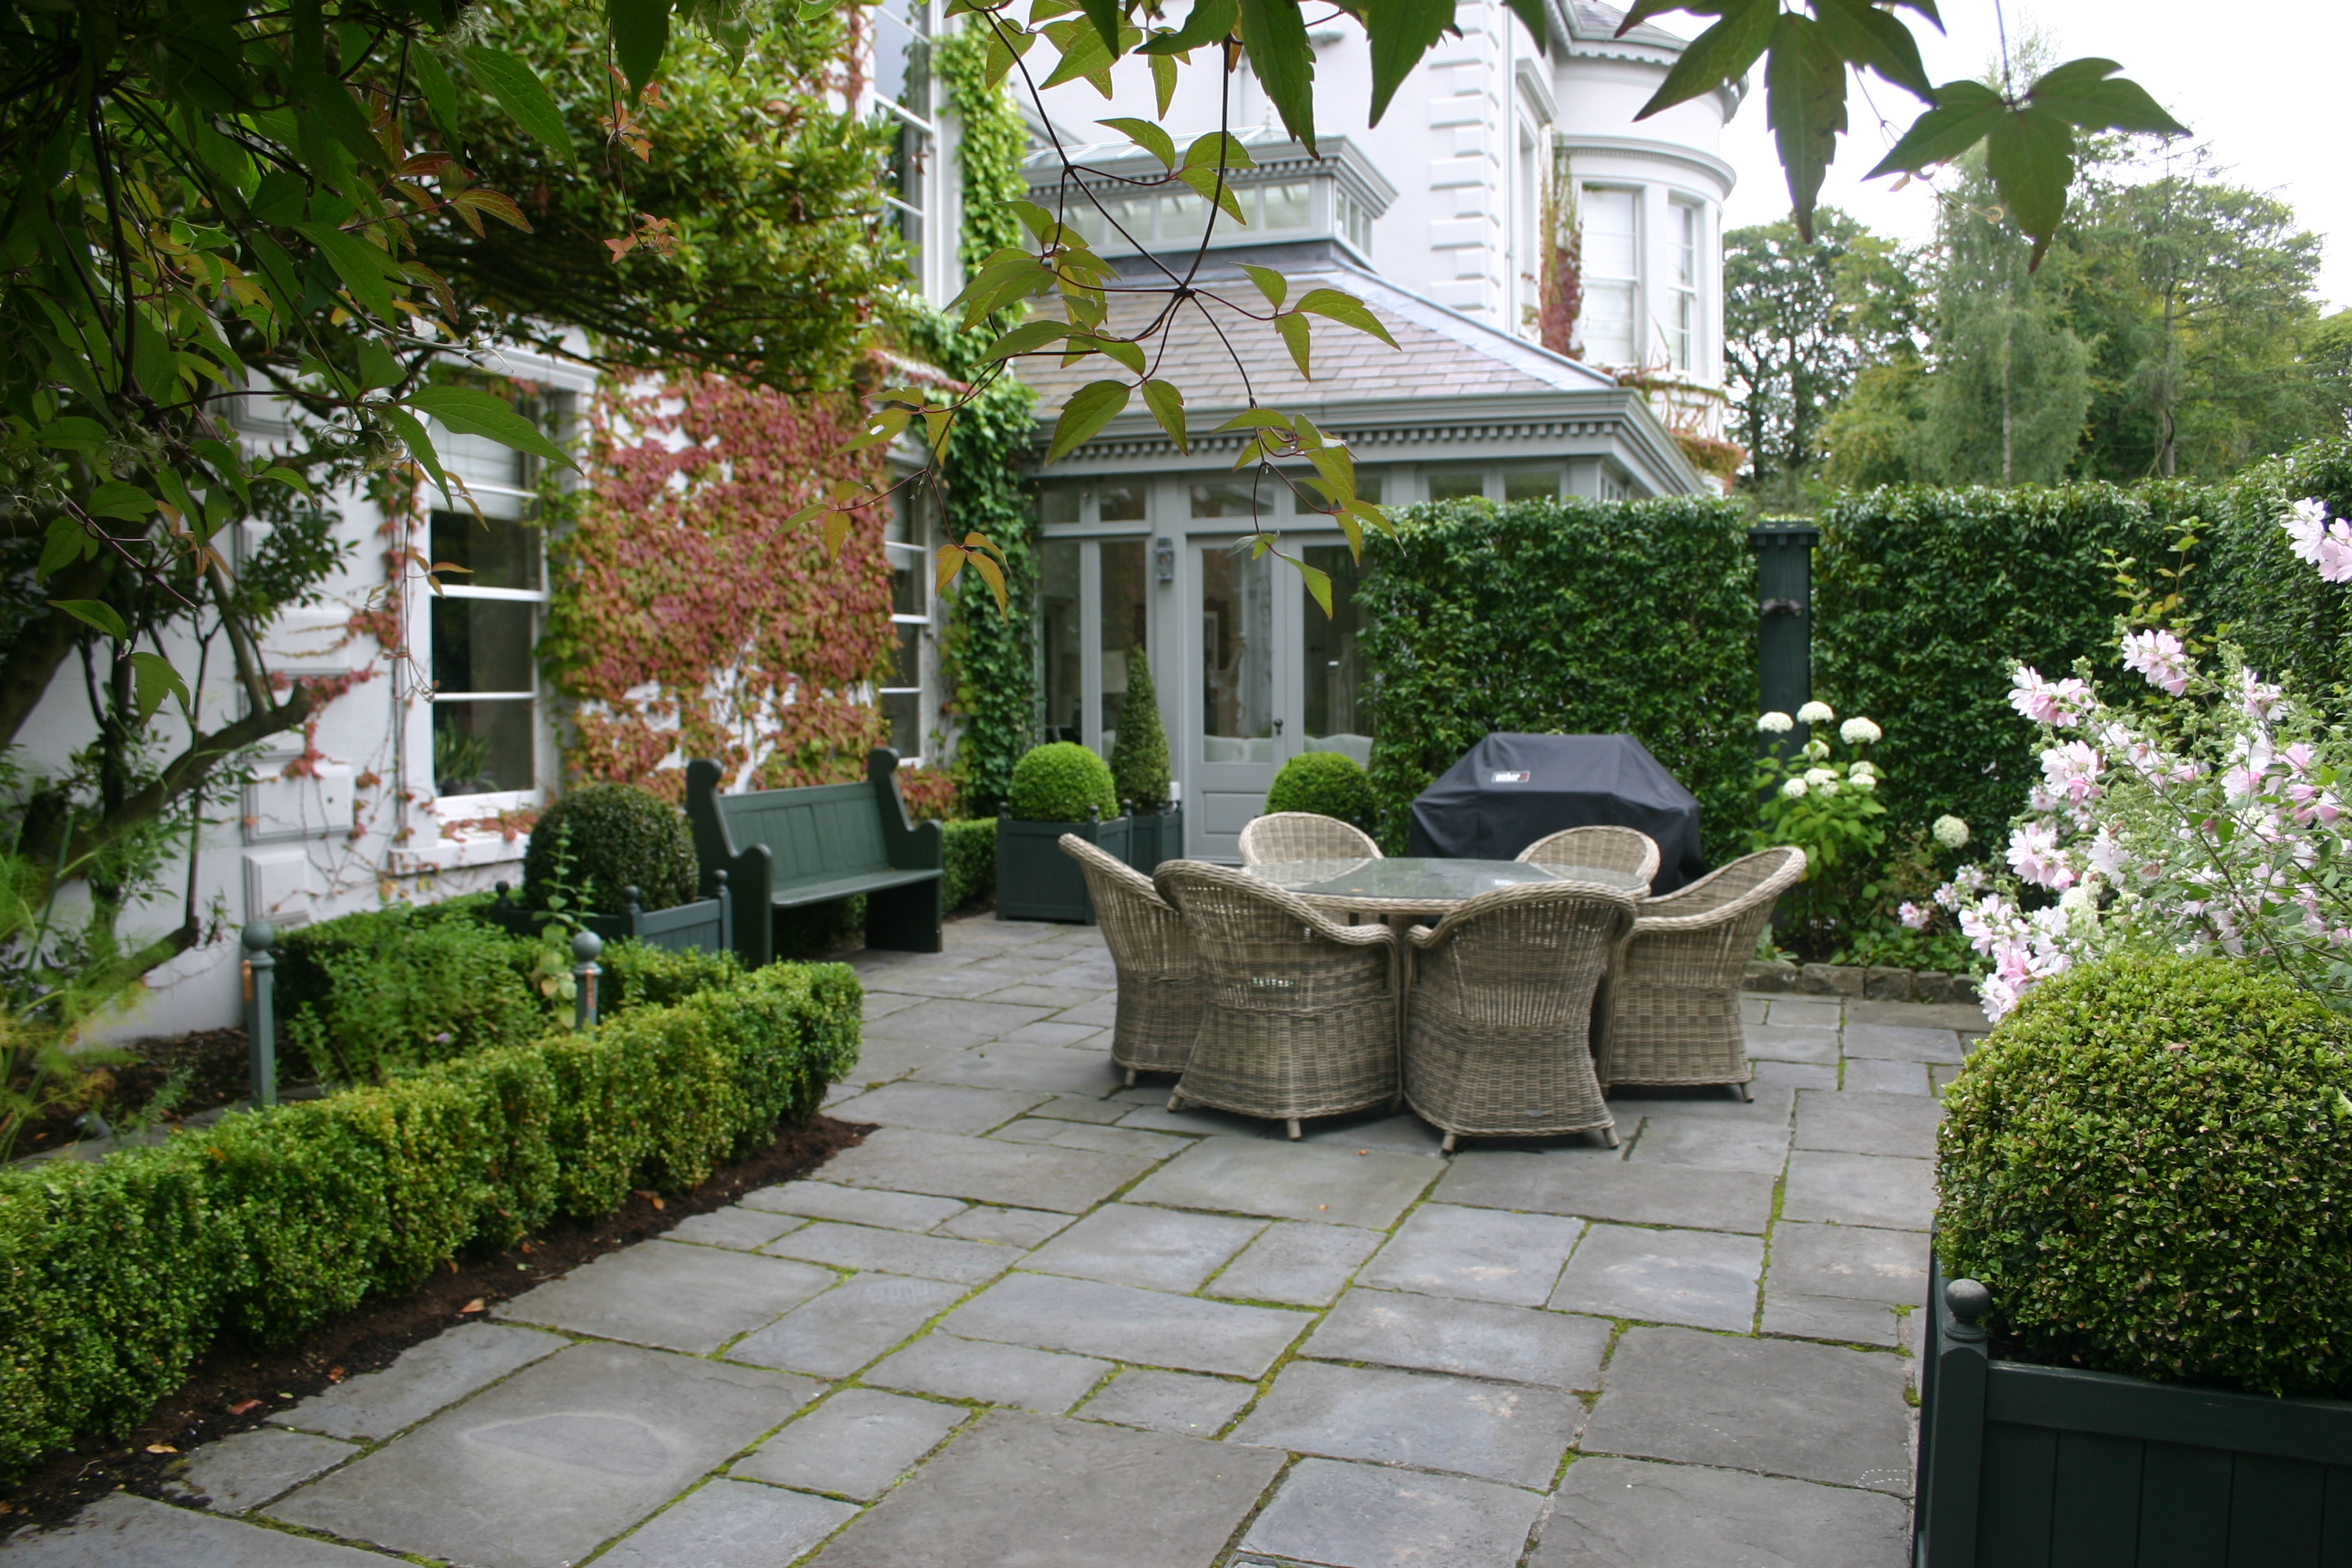 Heritage garden home design ideas and pictures for Hamptons home and garden design penarth